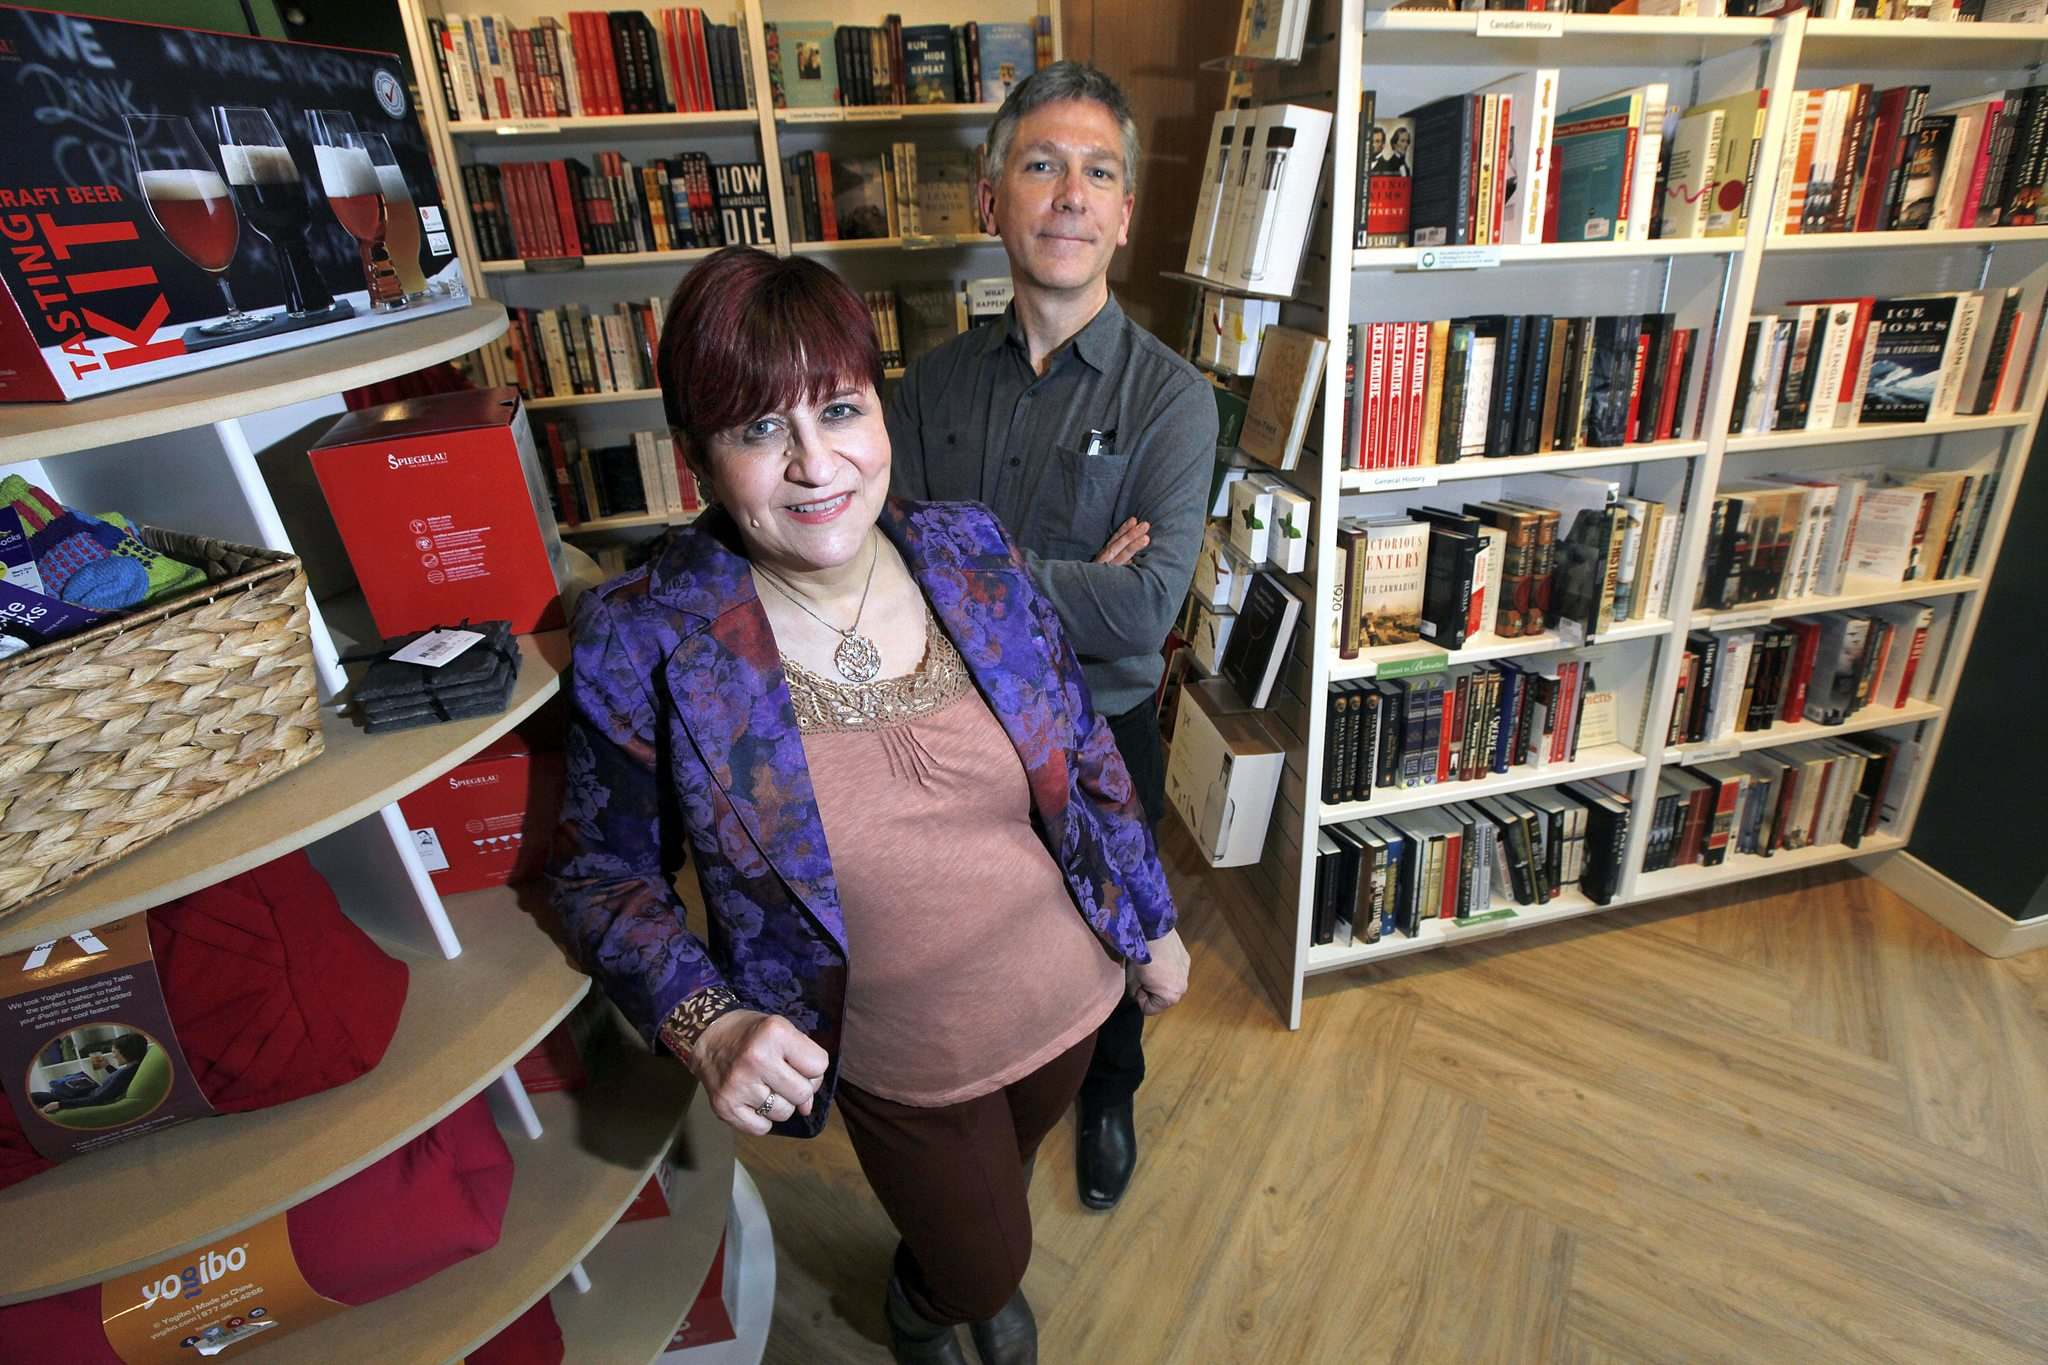 PHIL HOSSACK / WINNIPEG FREE PRESS </p><p>Lori Baker (left) and Chris Hall, who took over McNally Robinson 2½ years ago, are excited to open a second Winnipeg location.</p>